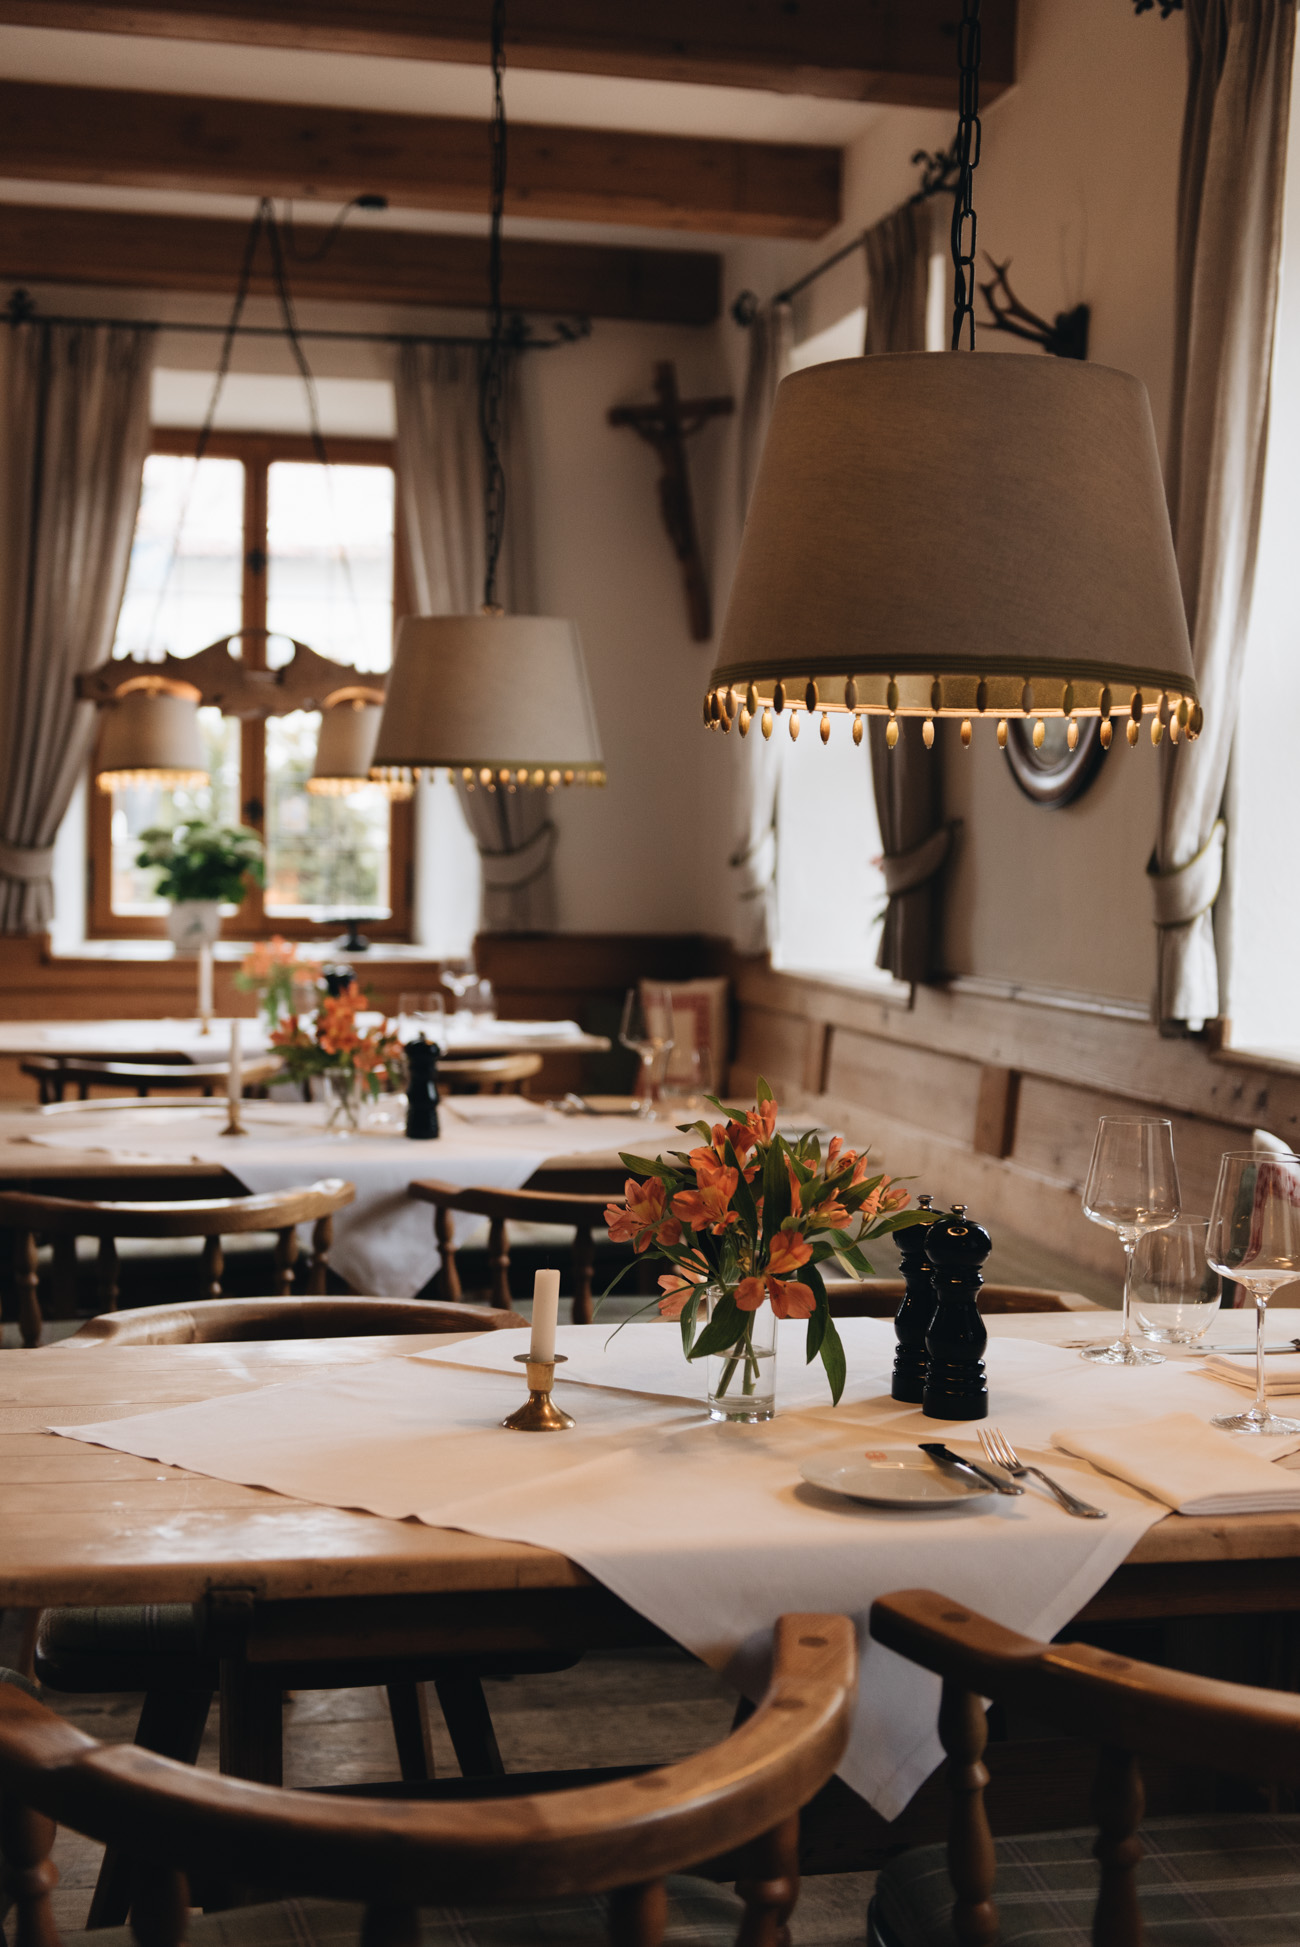 Hotel-review-bachmair-waissach-tegernsee